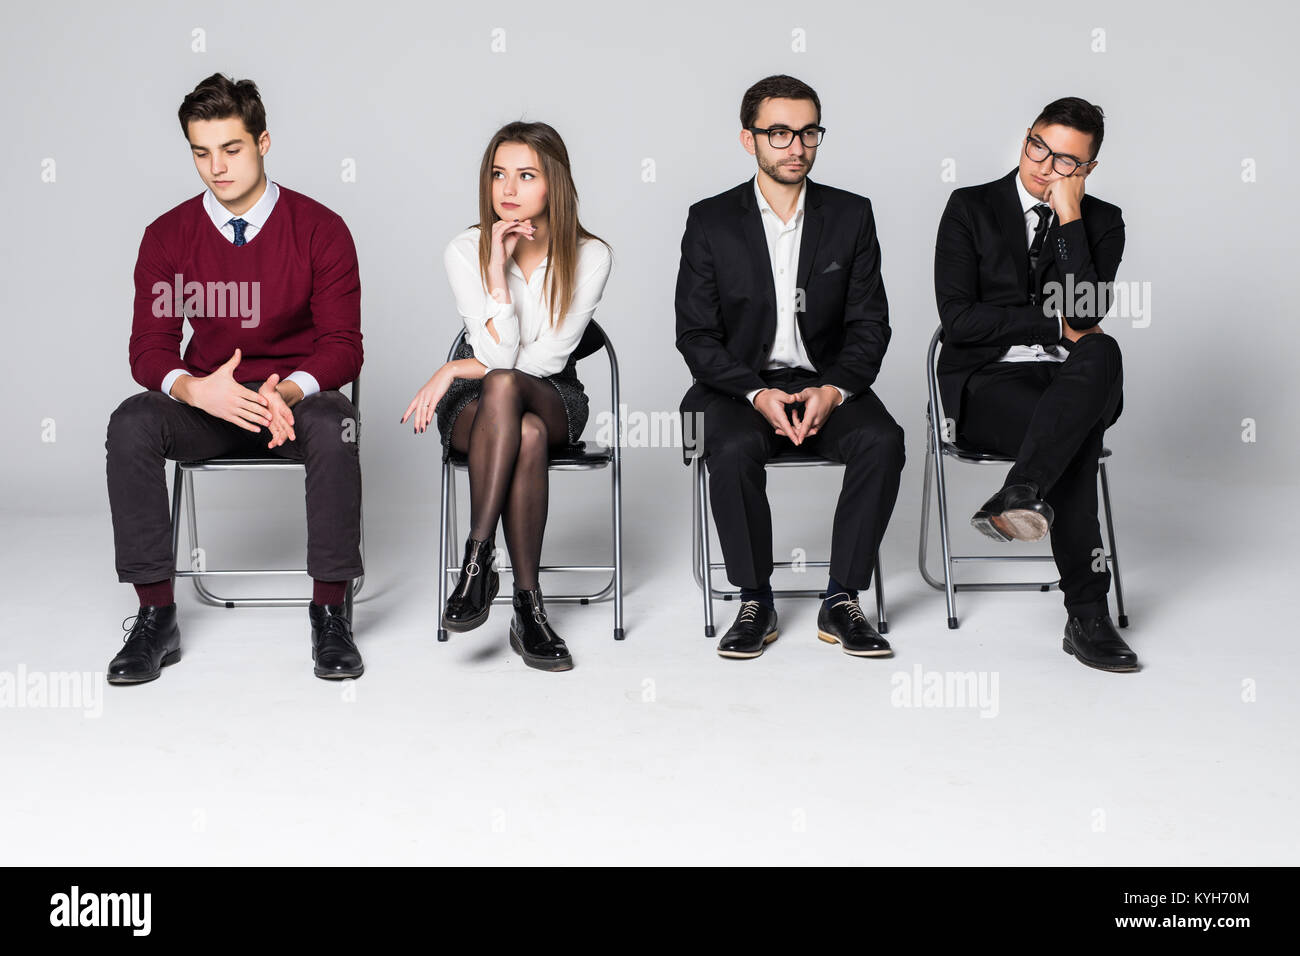 Group of people sitting on chairs waiting interviews - Stock Image